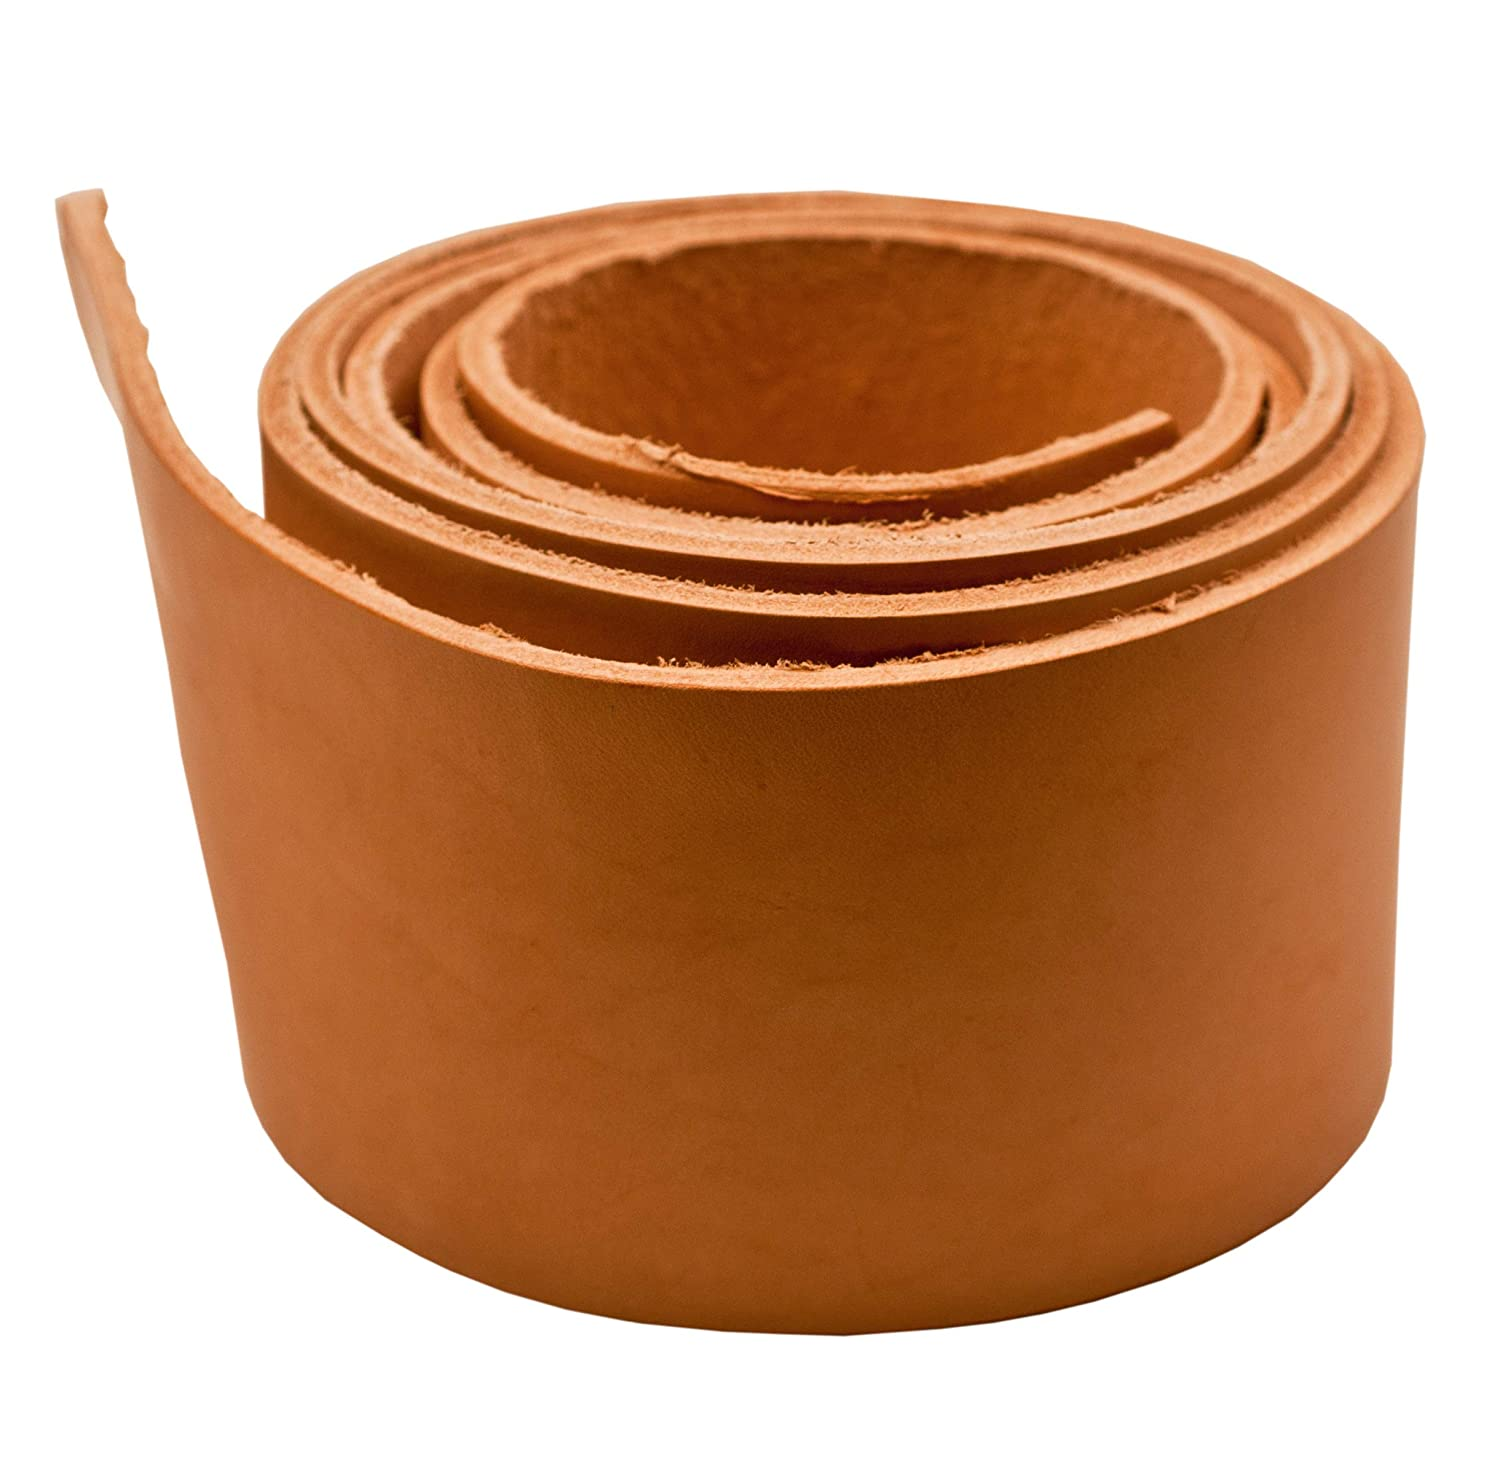 Jewelry Supply Craft Brown 1//2 x 84 5oz Genuine Leather CleverDelights Premium Cowhide Leather Strap